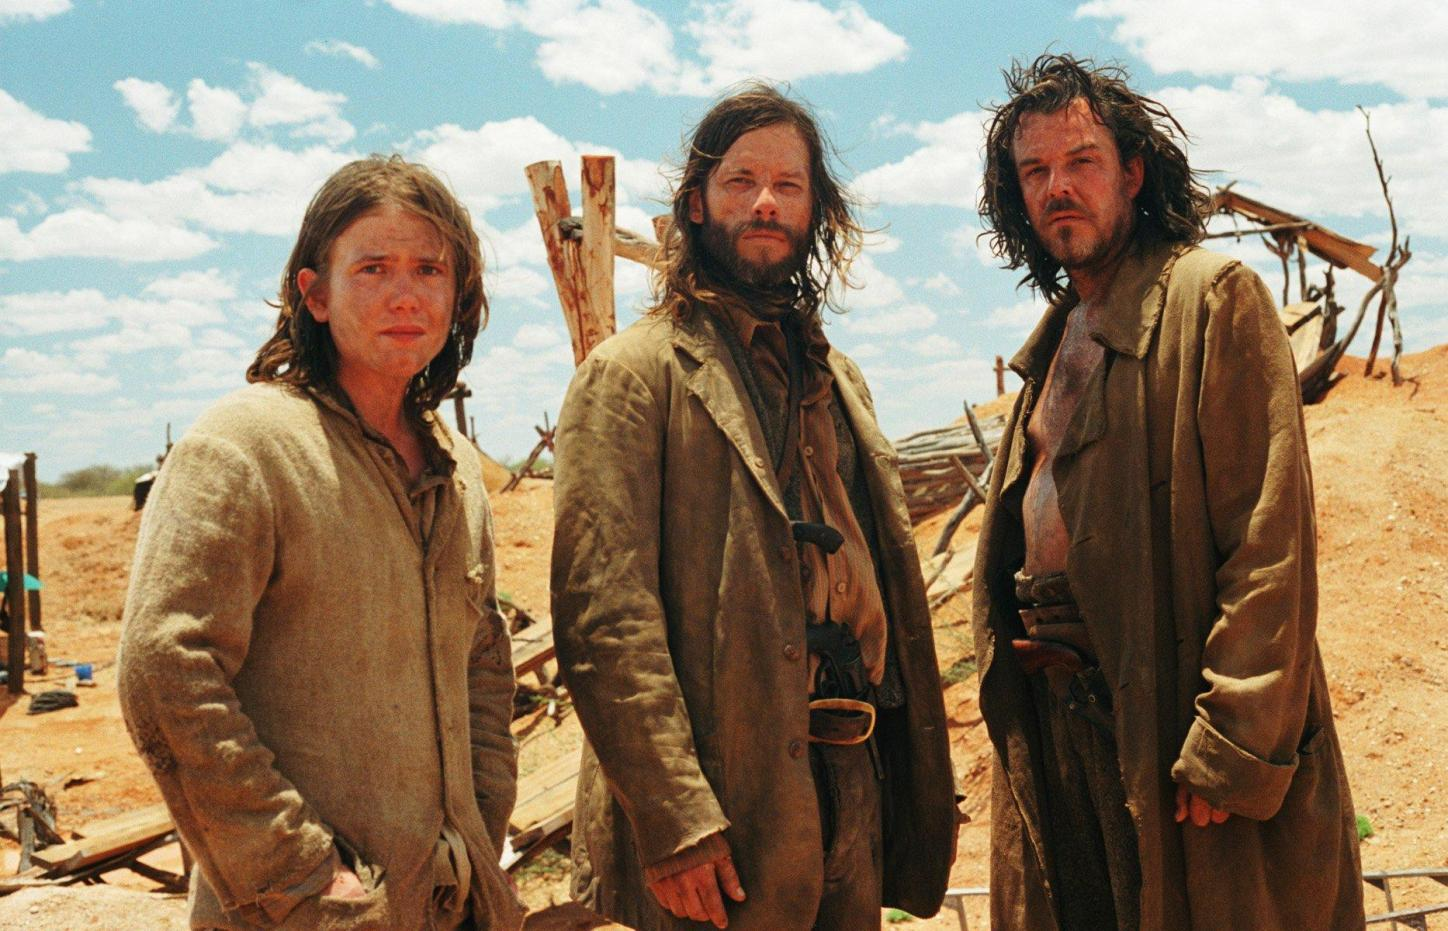 The proposition – John Hillcoat